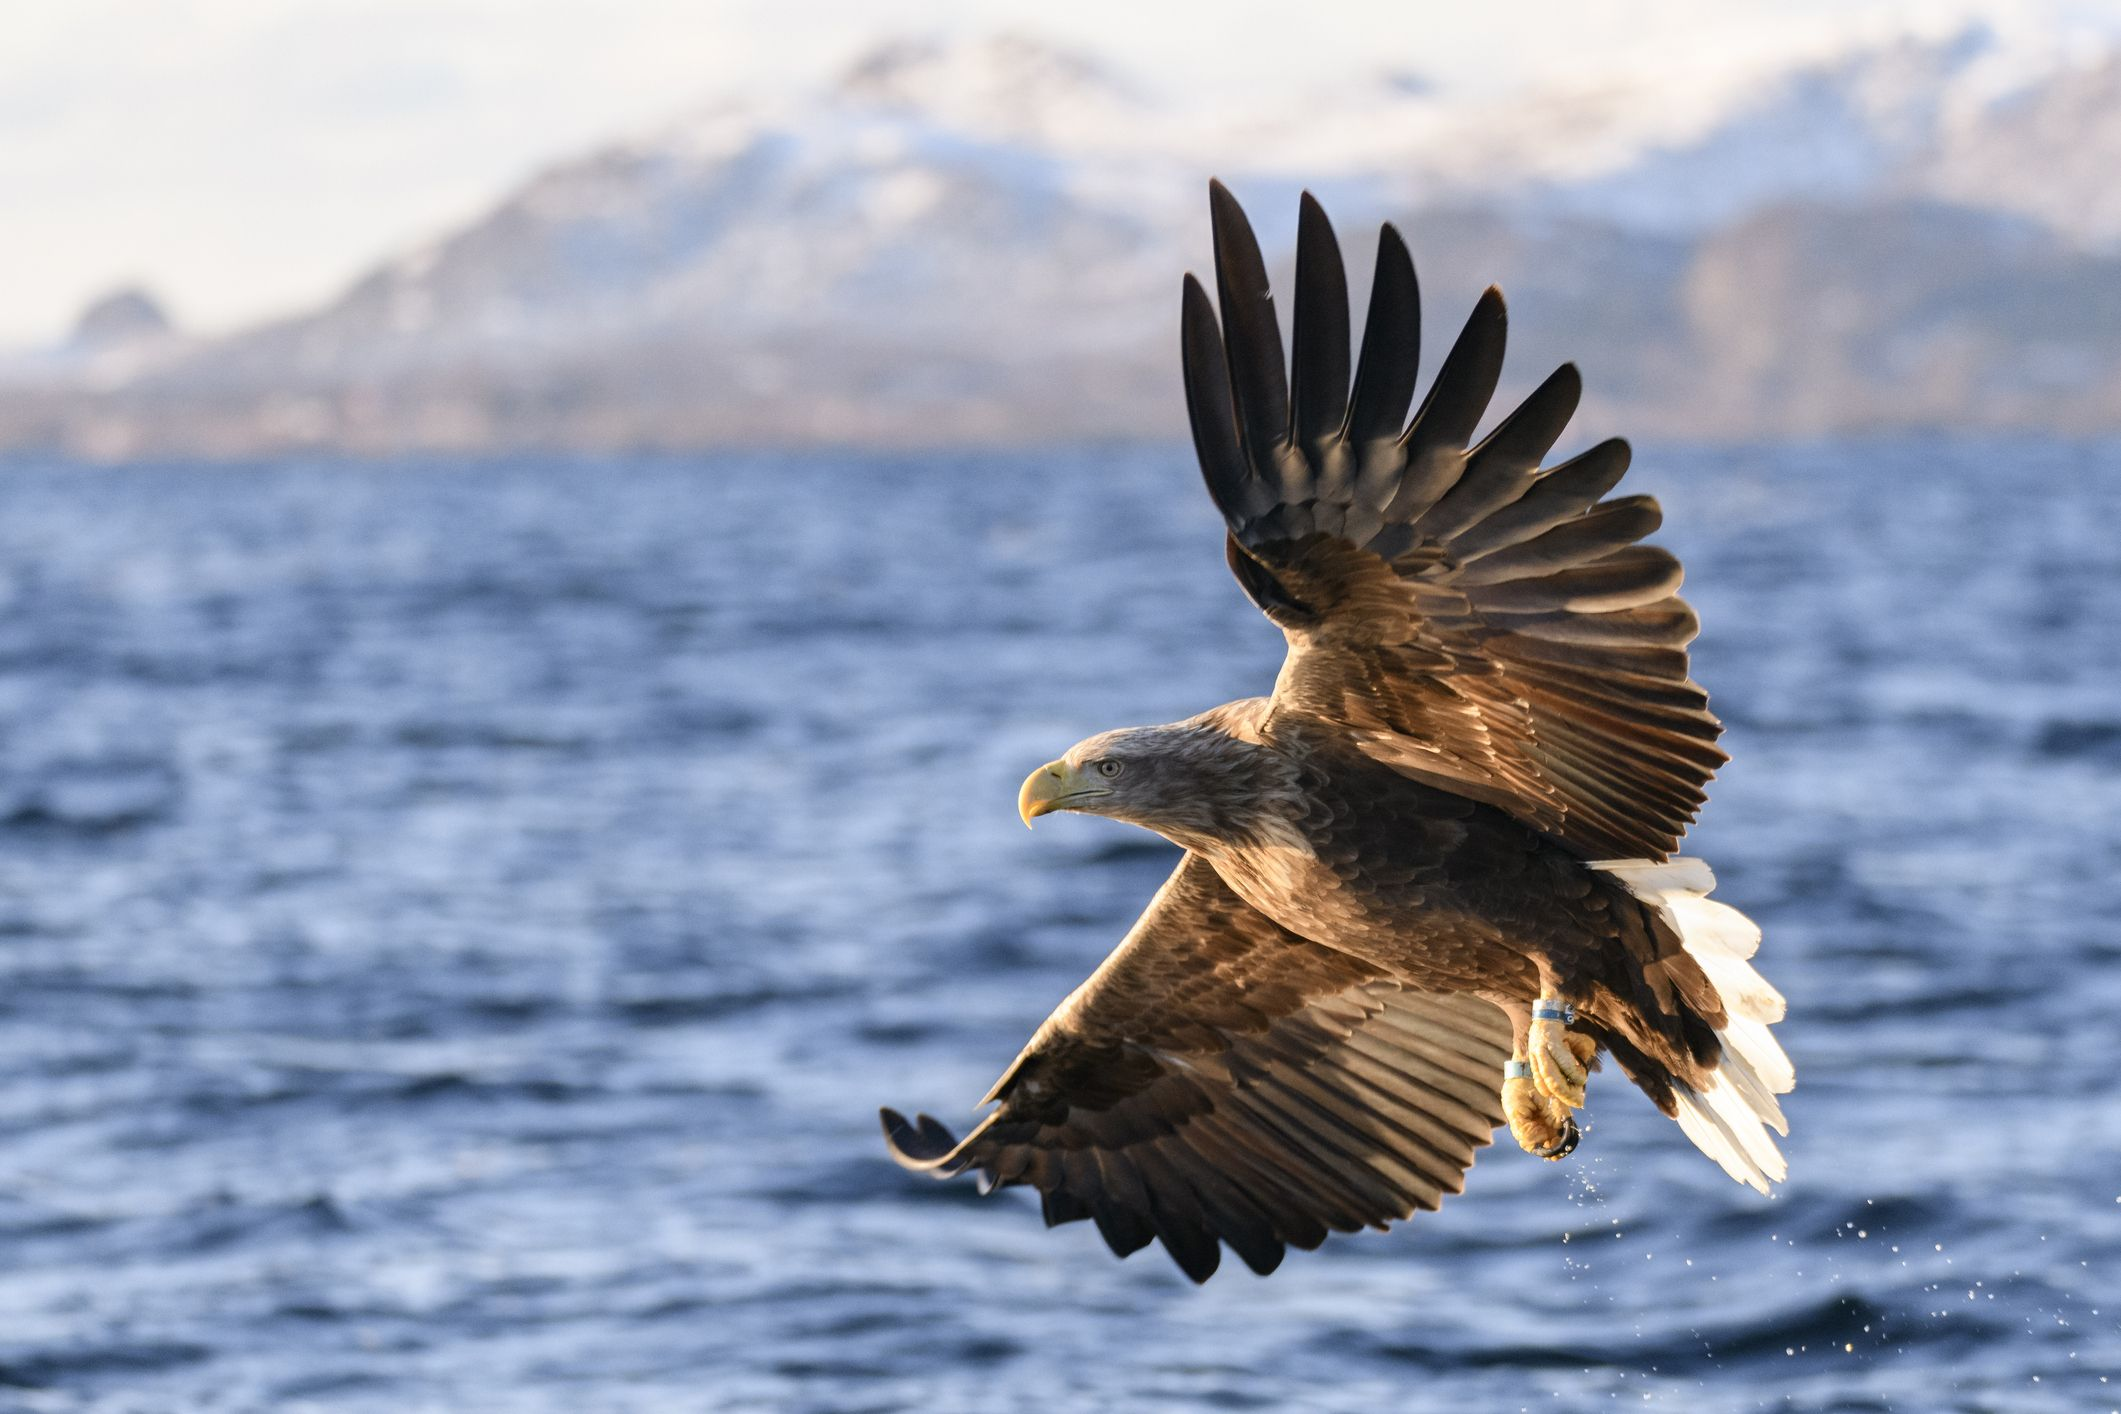 White Tailed Eagles Spotted For The First Time In 240 Years